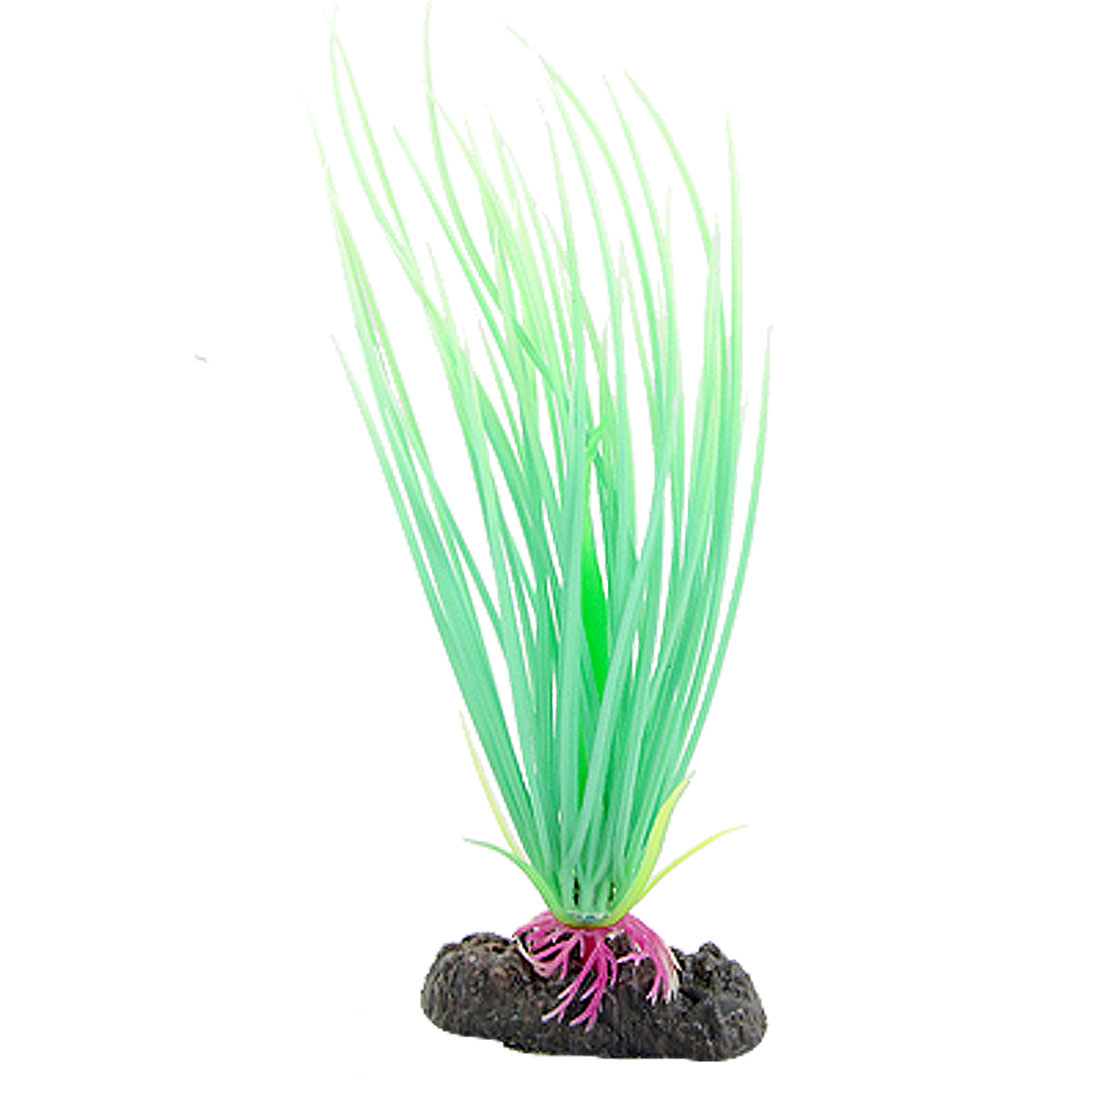 Green-Luminous-Plastic-Plants-Ornament-for-Fish-Tank